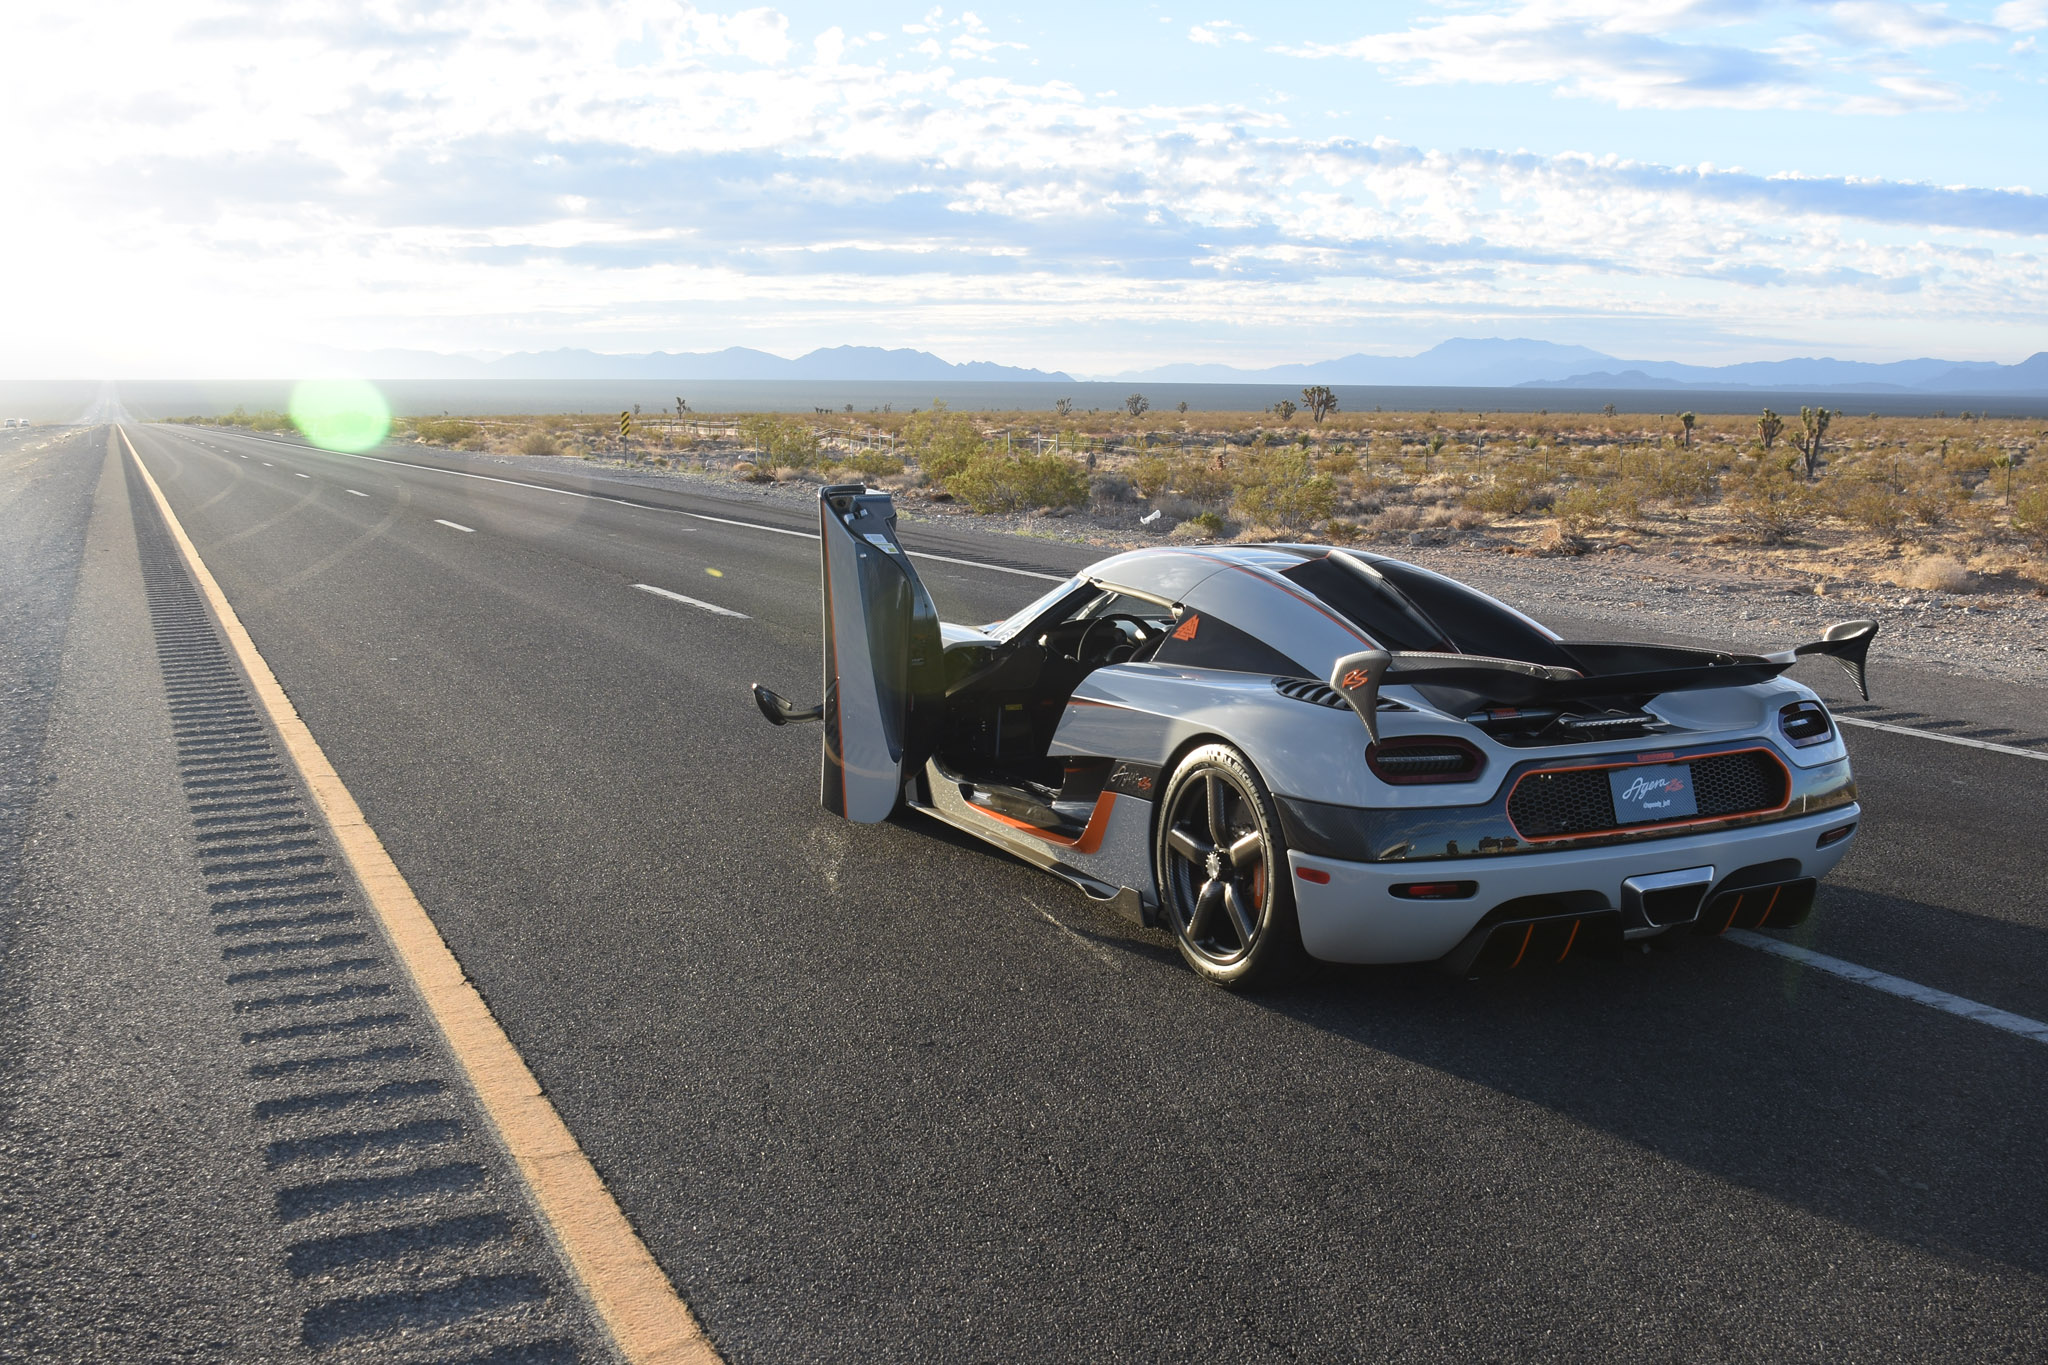 Our Exclusive Ride in an Koenigsegg Agera RS on a Closed Nevada Road ...